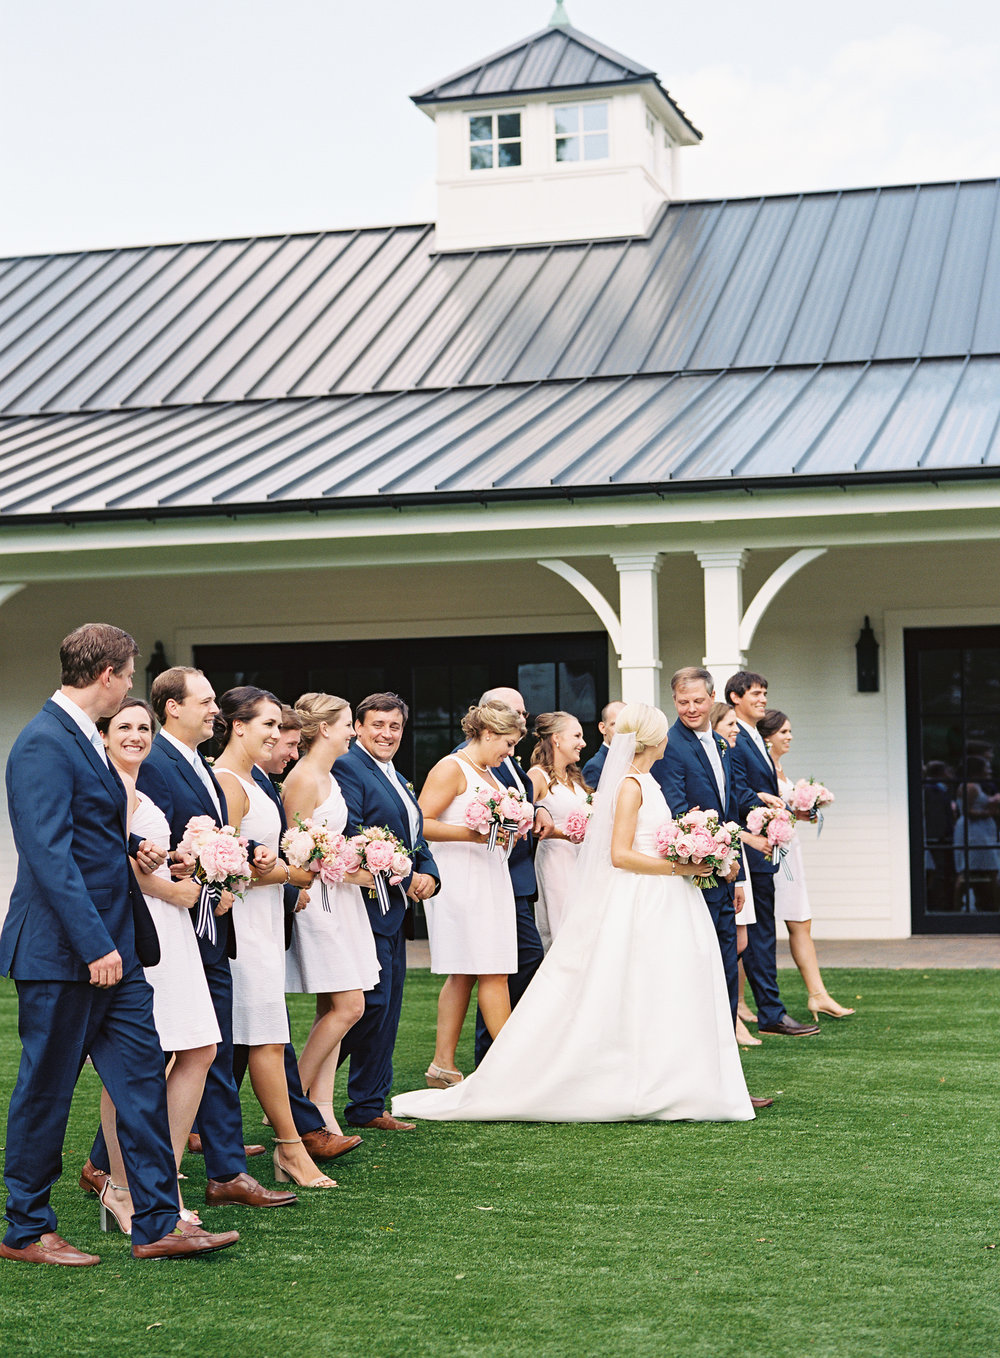 Southern Weddings   Monogrammed Wedding by Rebecca Rose and Graham Terhune